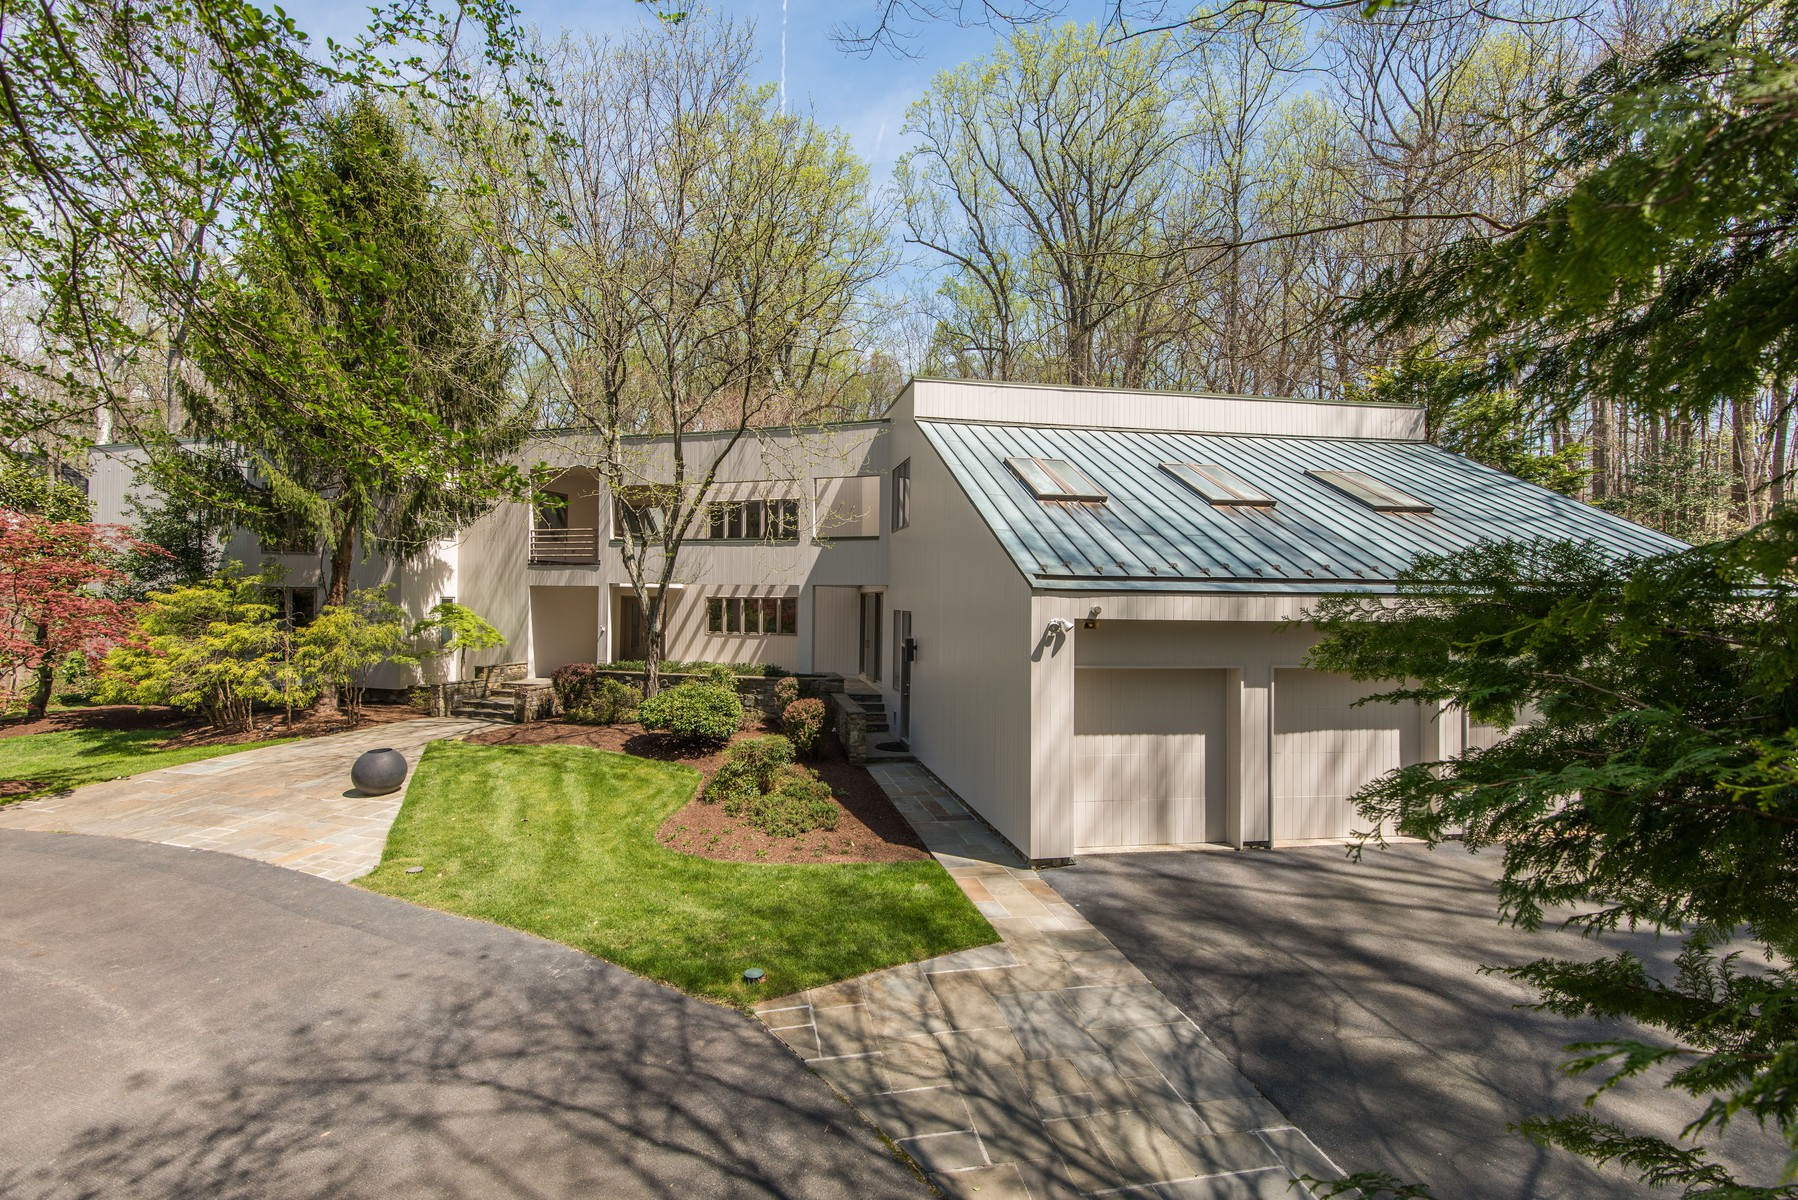 Single Family Home for Sale at Rare Contemporary 905 Mackall Ave McLean, Virginia, 22101 United States